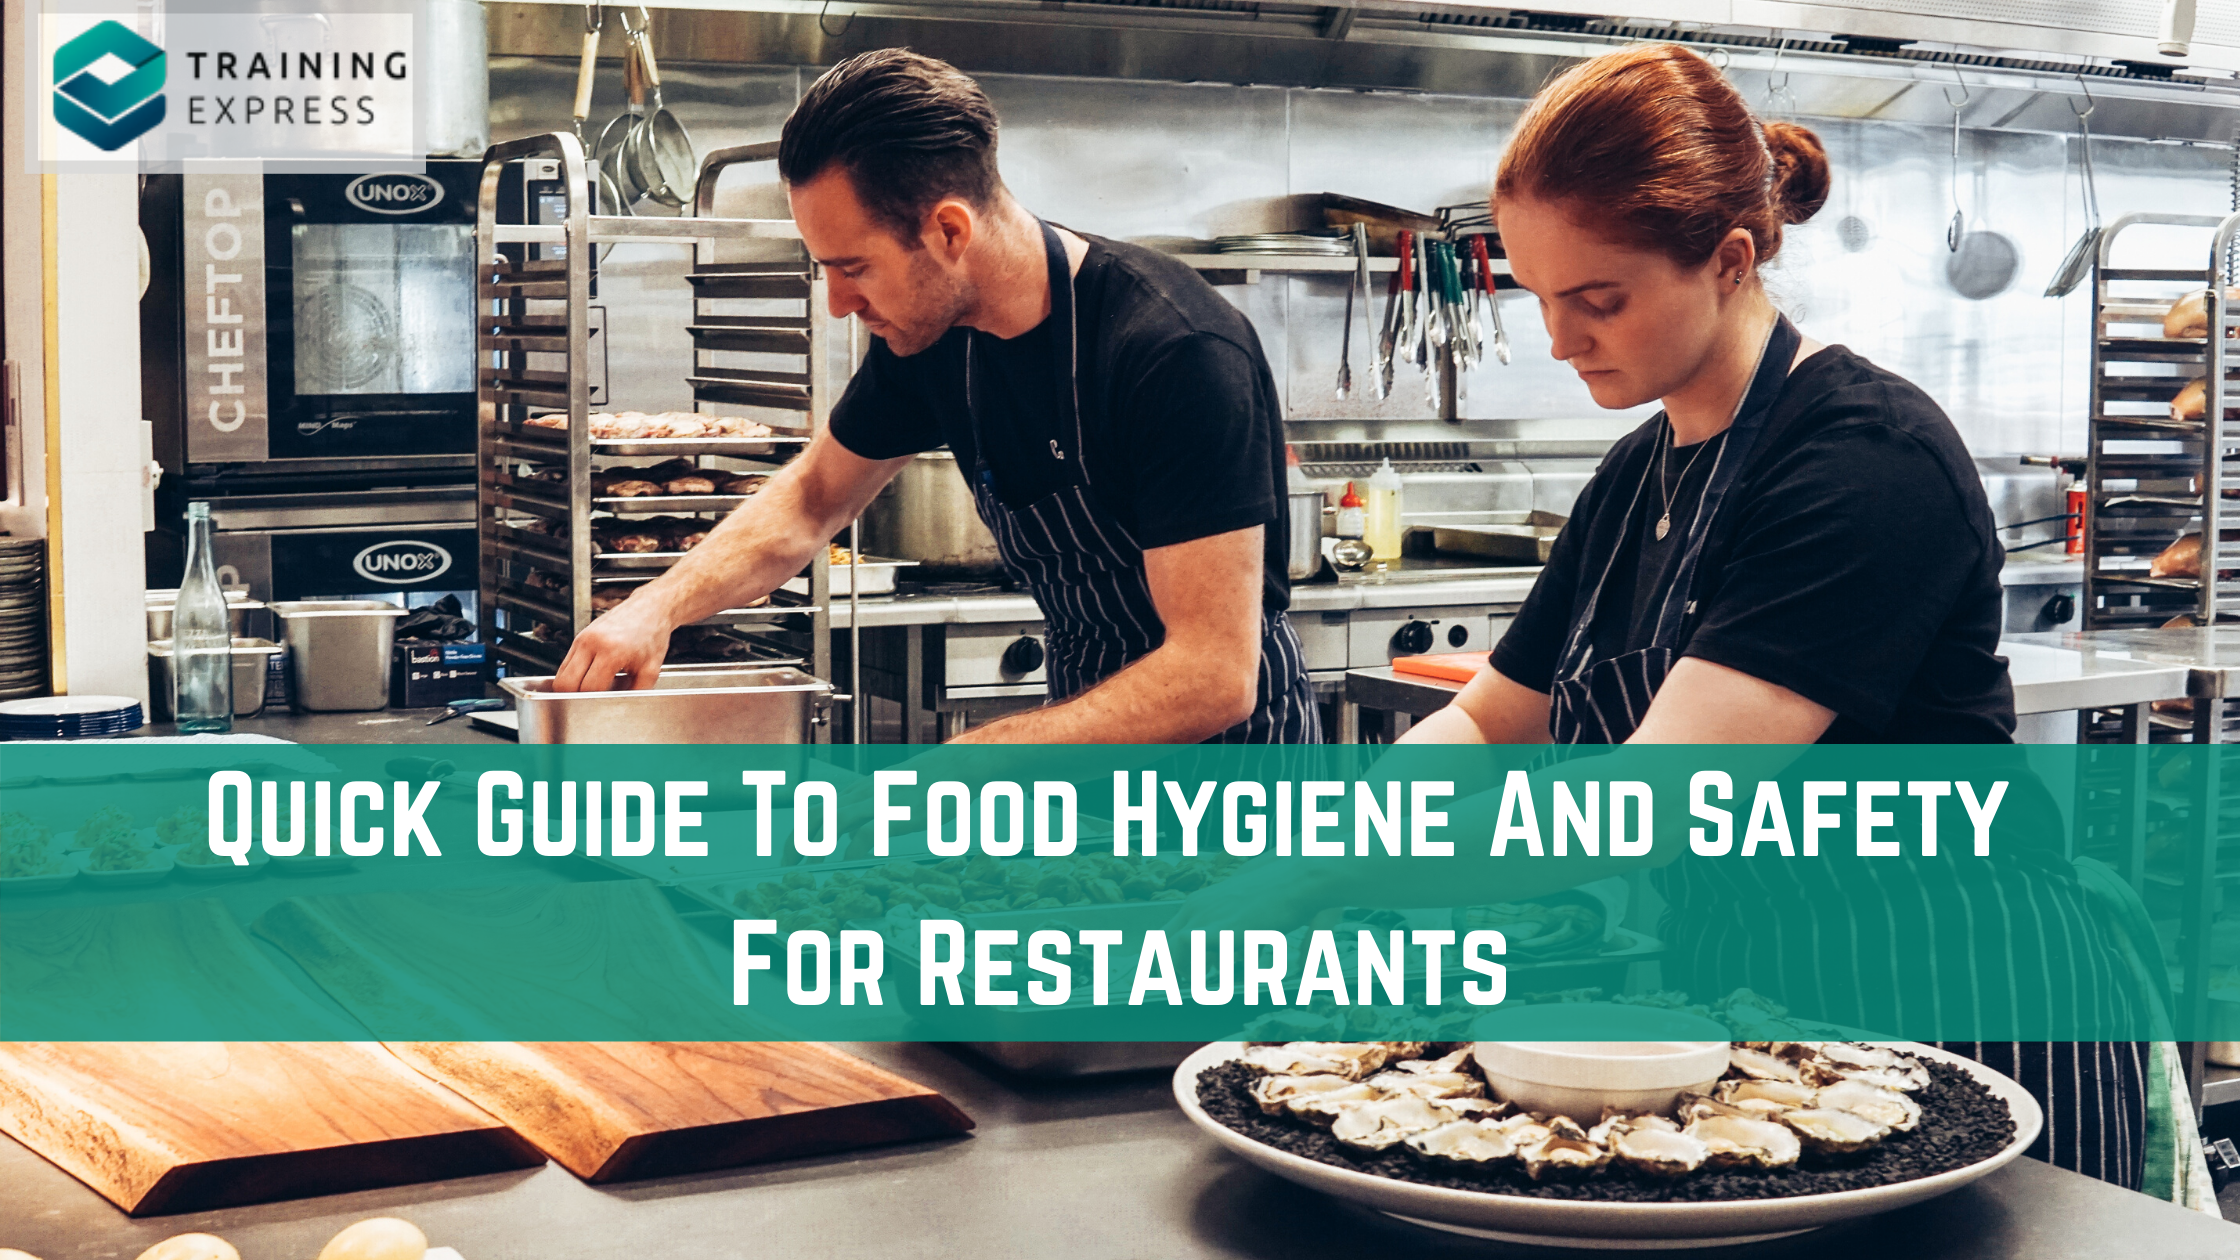 Food Hygiene And Safety For Restaurants